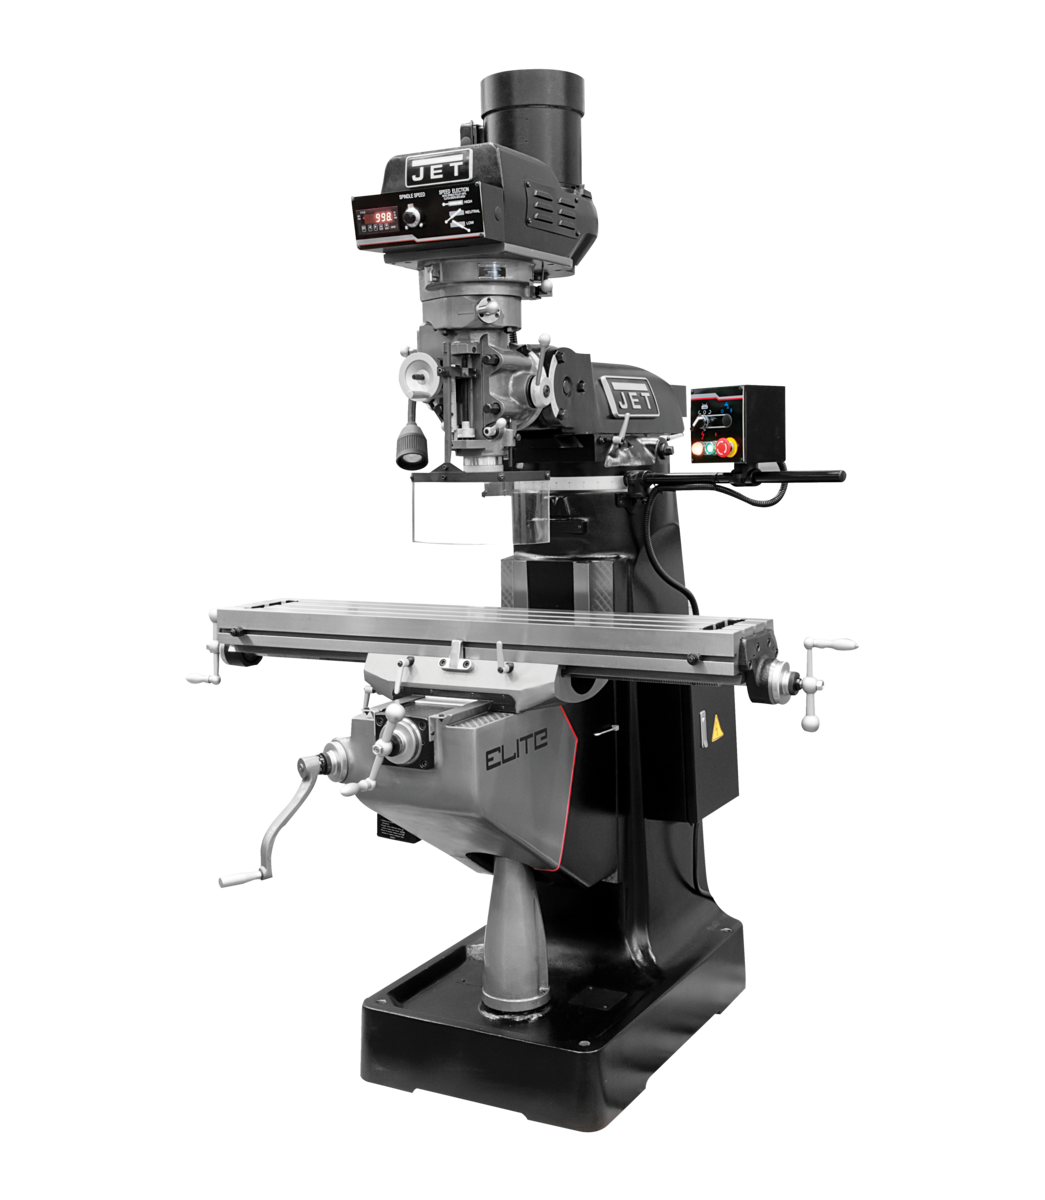 EVS-949 Mill with 3-Axis ACU-RITE 303 (Quill) DRO and X, Y, Z-Axis JET Powerfeeds and USA Made Air Draw Bar